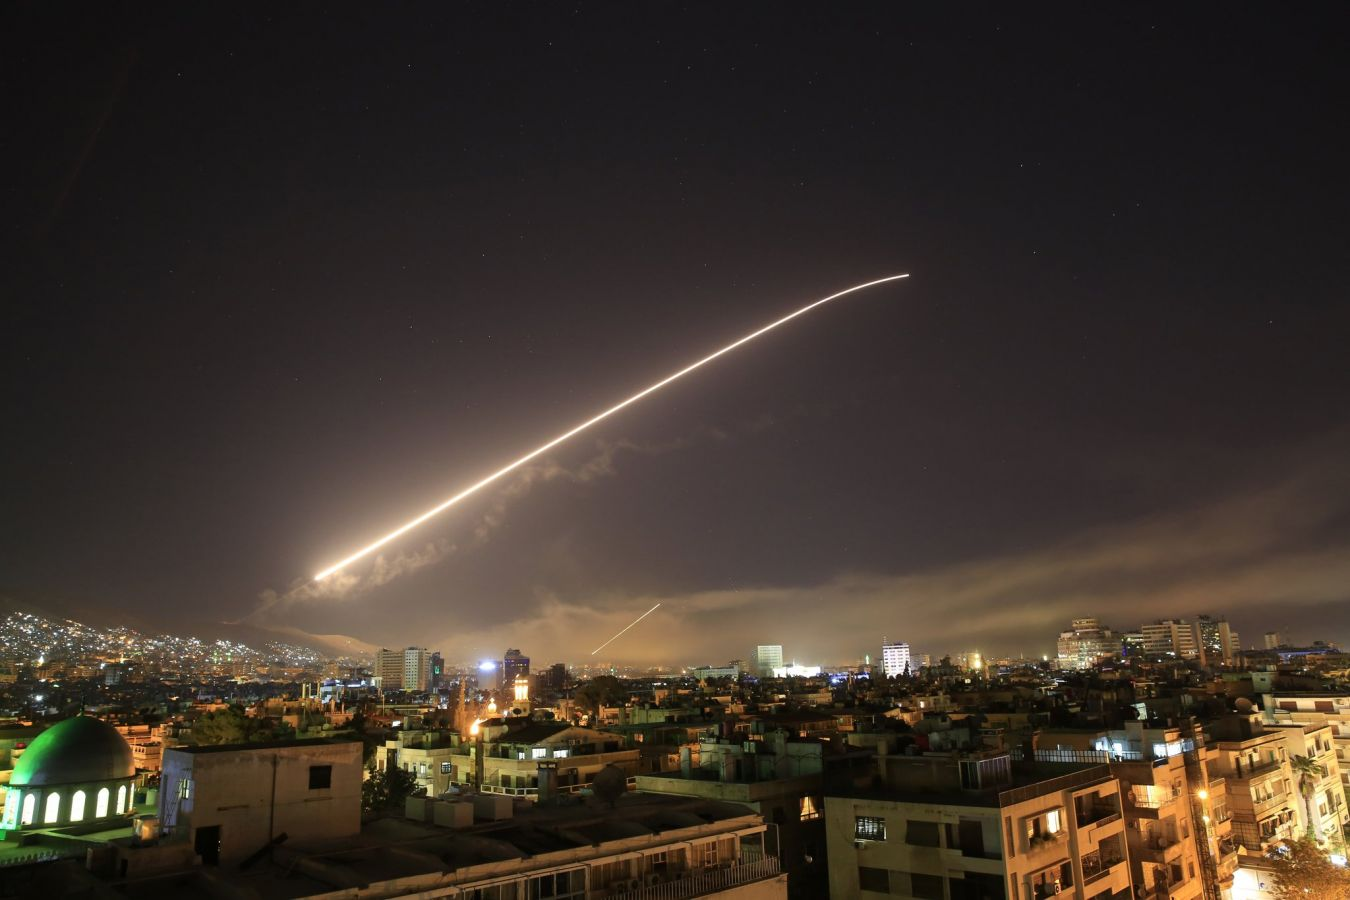 VIDEO IMPACTANTE: ASI ATACA EEUU A SIRIA